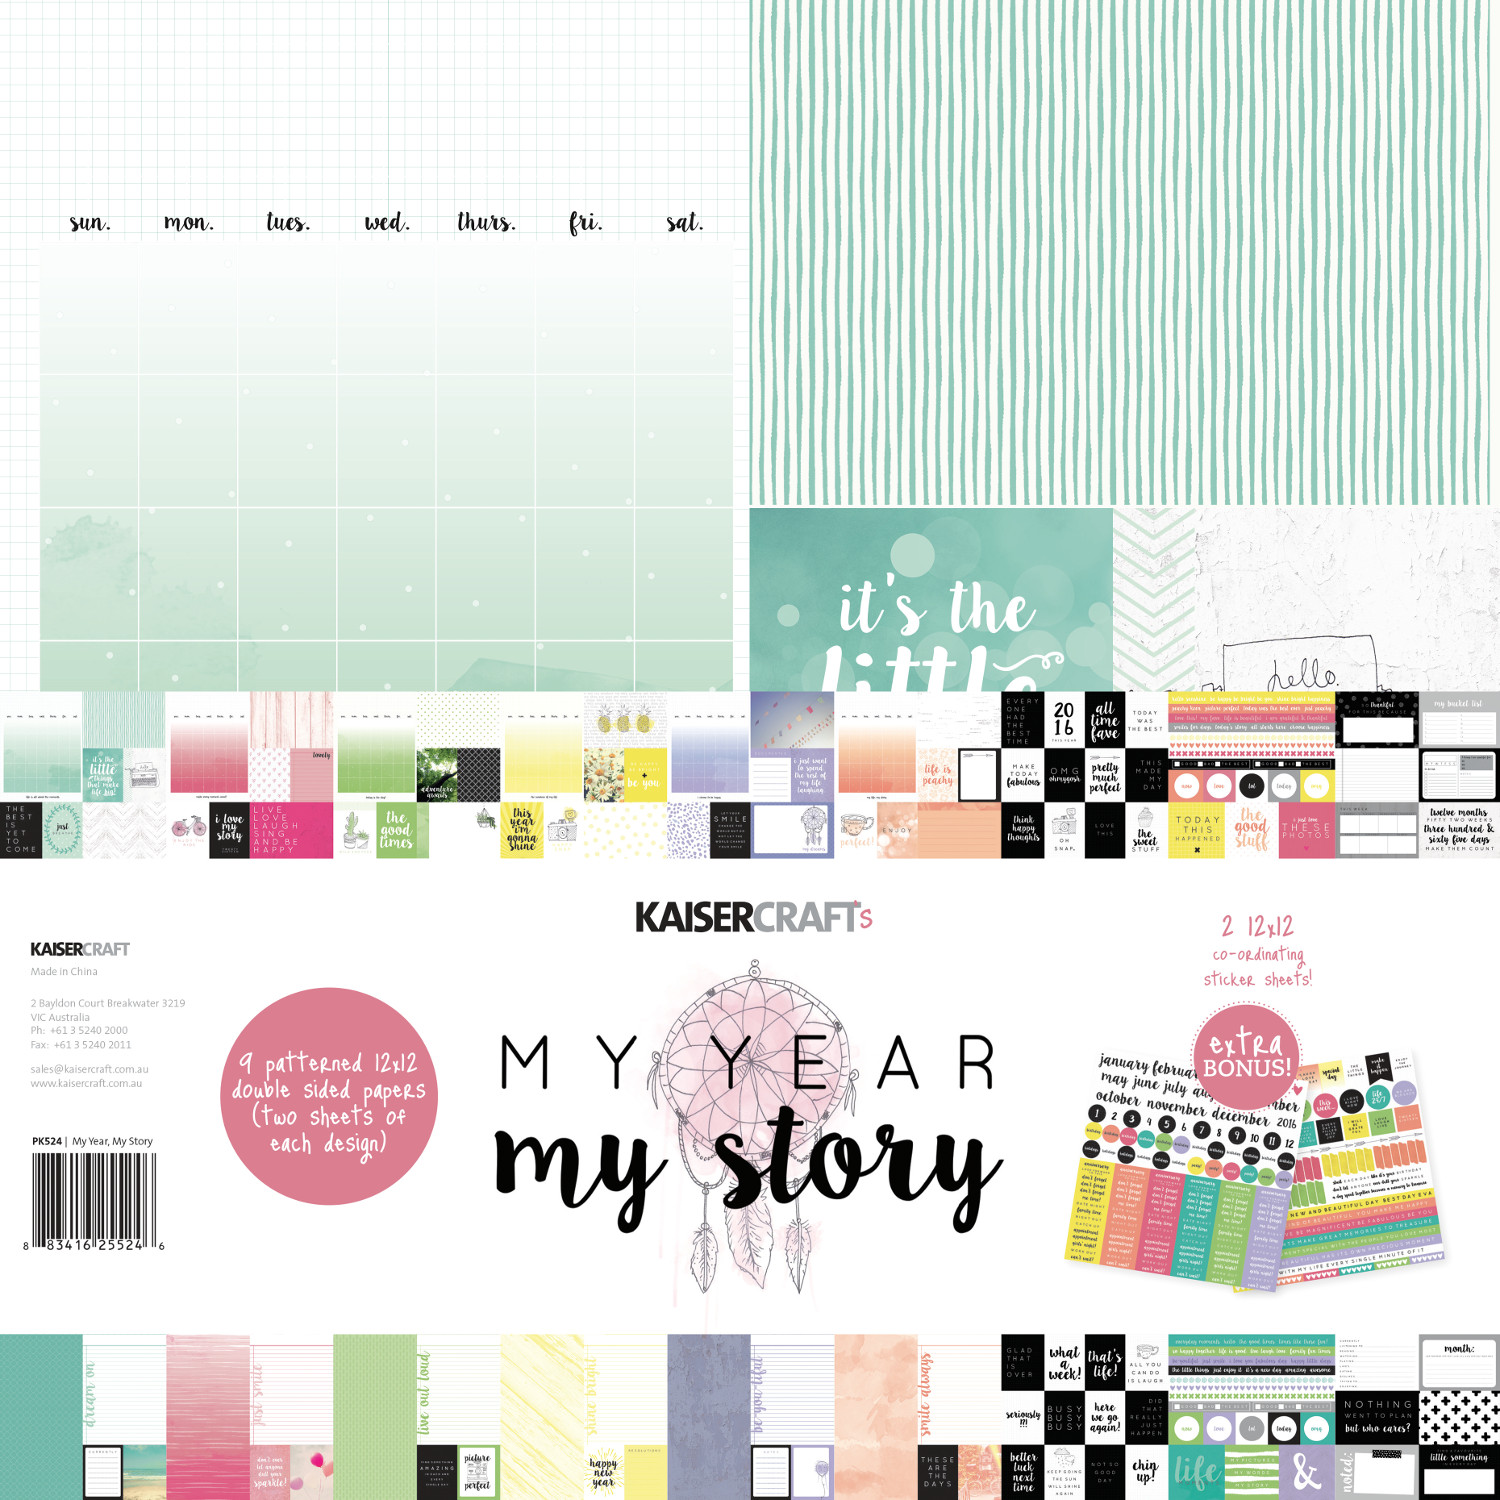 http://www.thewholesaler.biz/blog/wp-content/uploads/2015/11/Kaisercraft-KCPK524-My-year-my-story-Paper-Pack.jpg